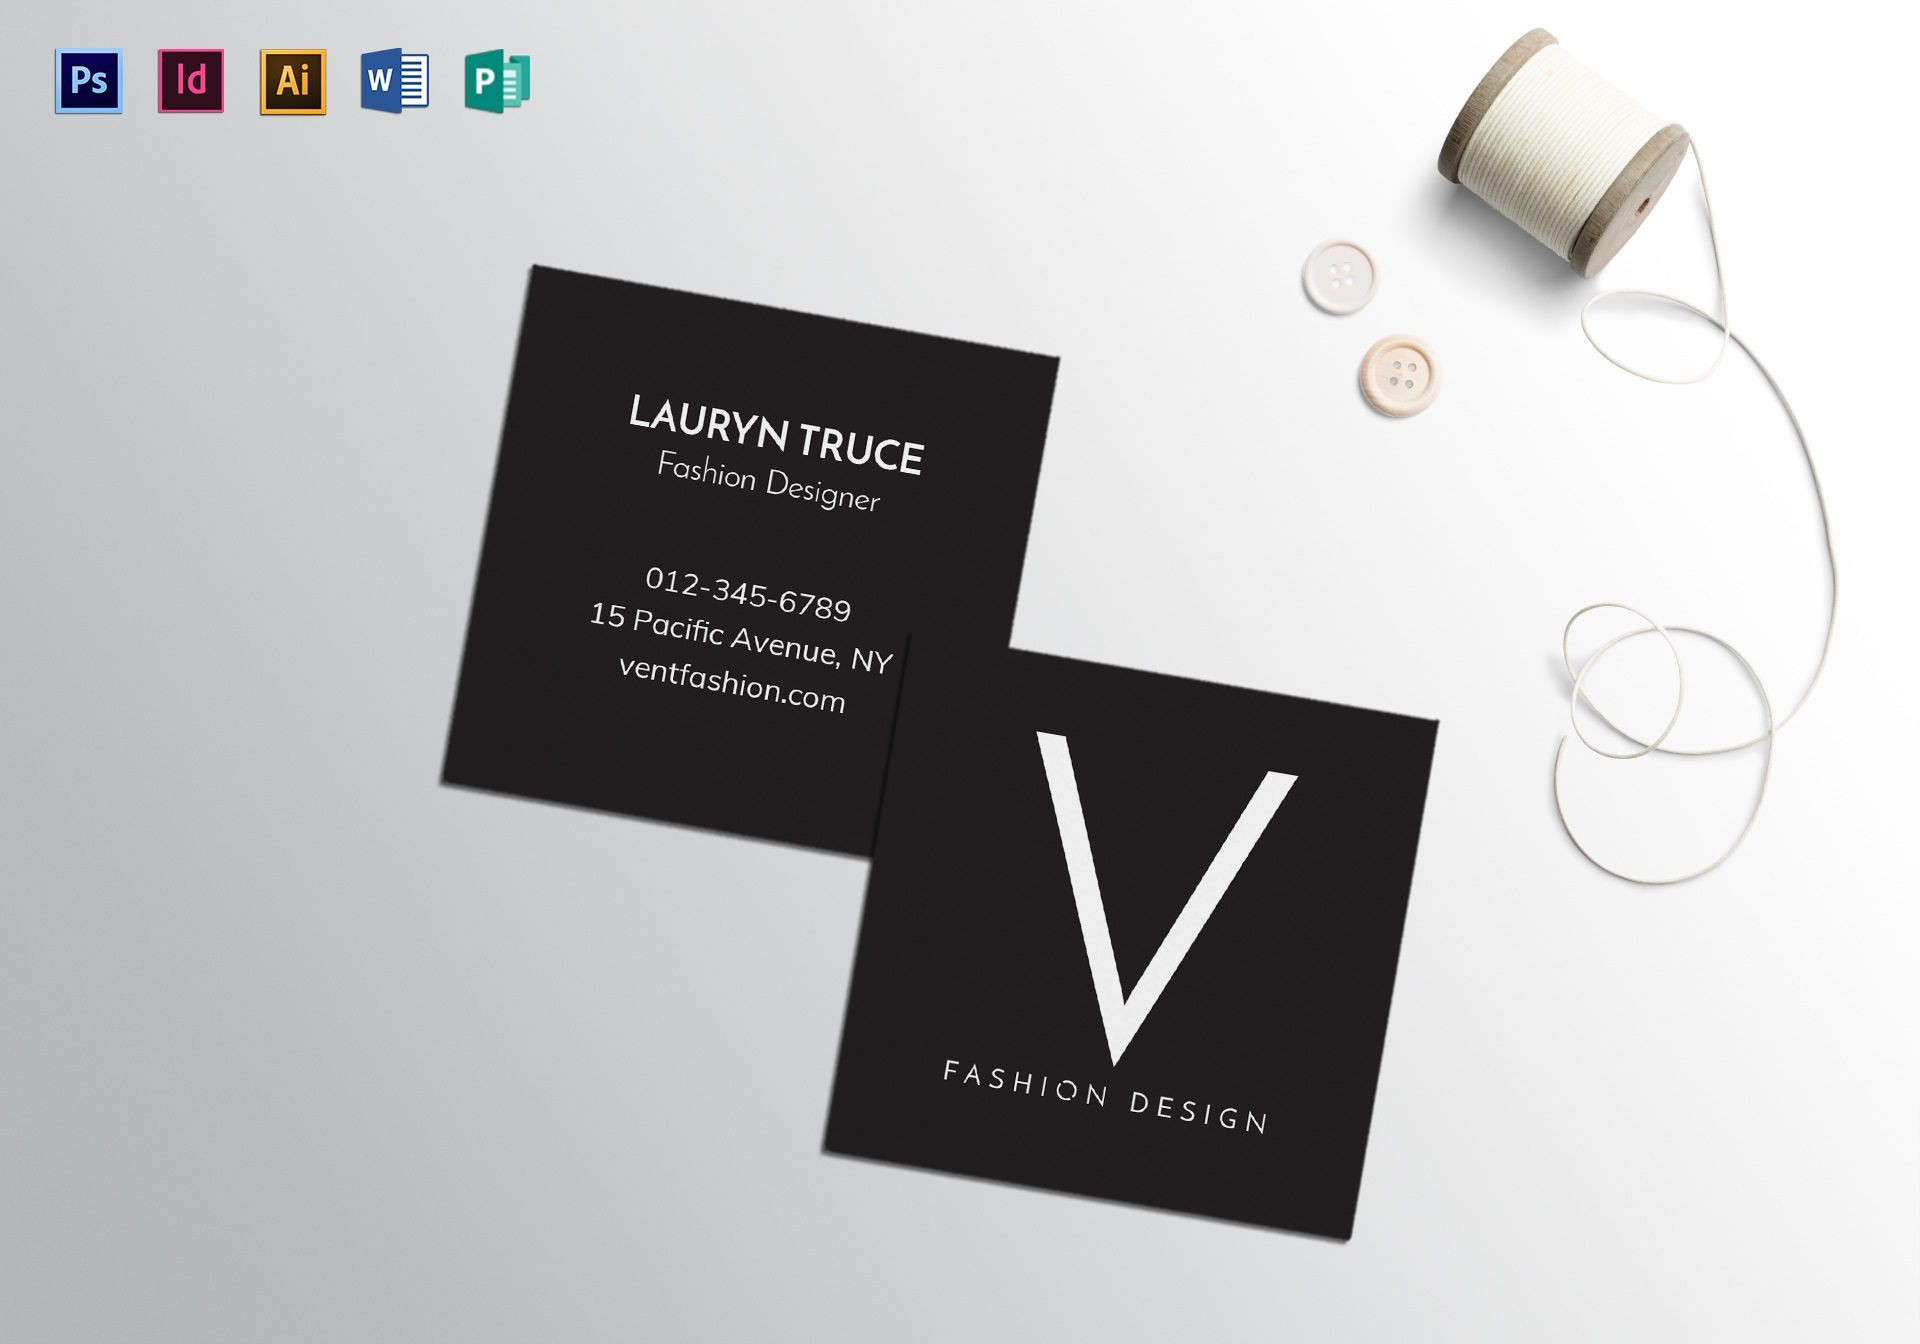 009 Outstanding Square Busines Card Template High Definition  Free Download Photoshop1920